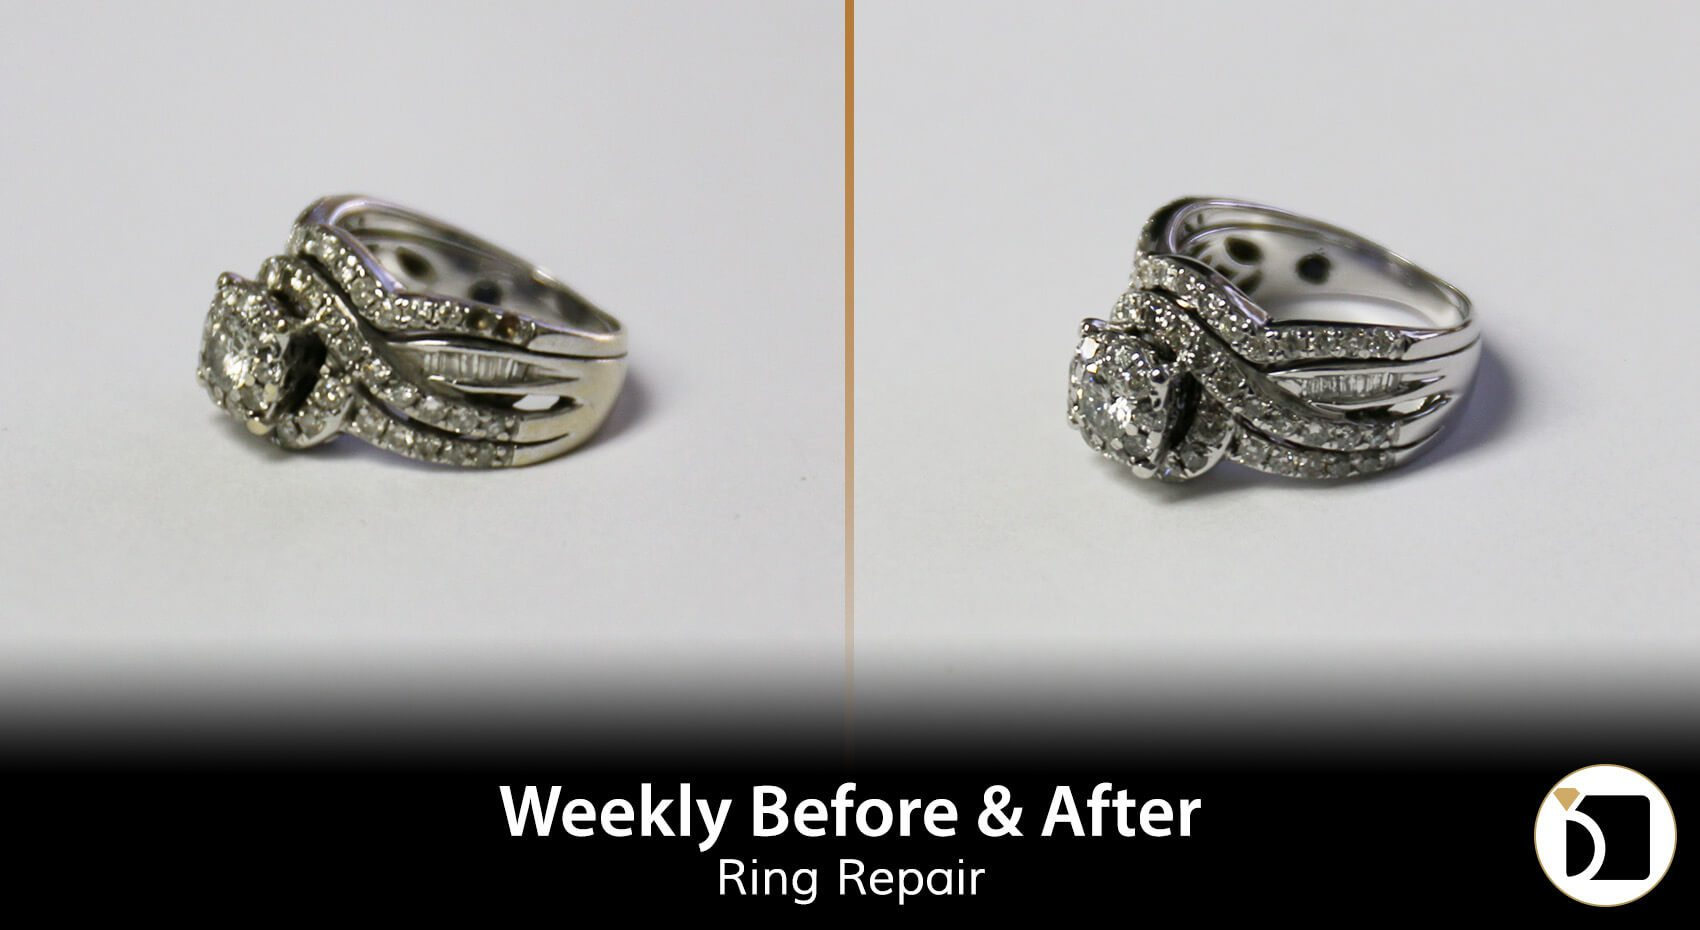 Image Showcasing a Double Diamond Ring Repair. Weekly Before After 93